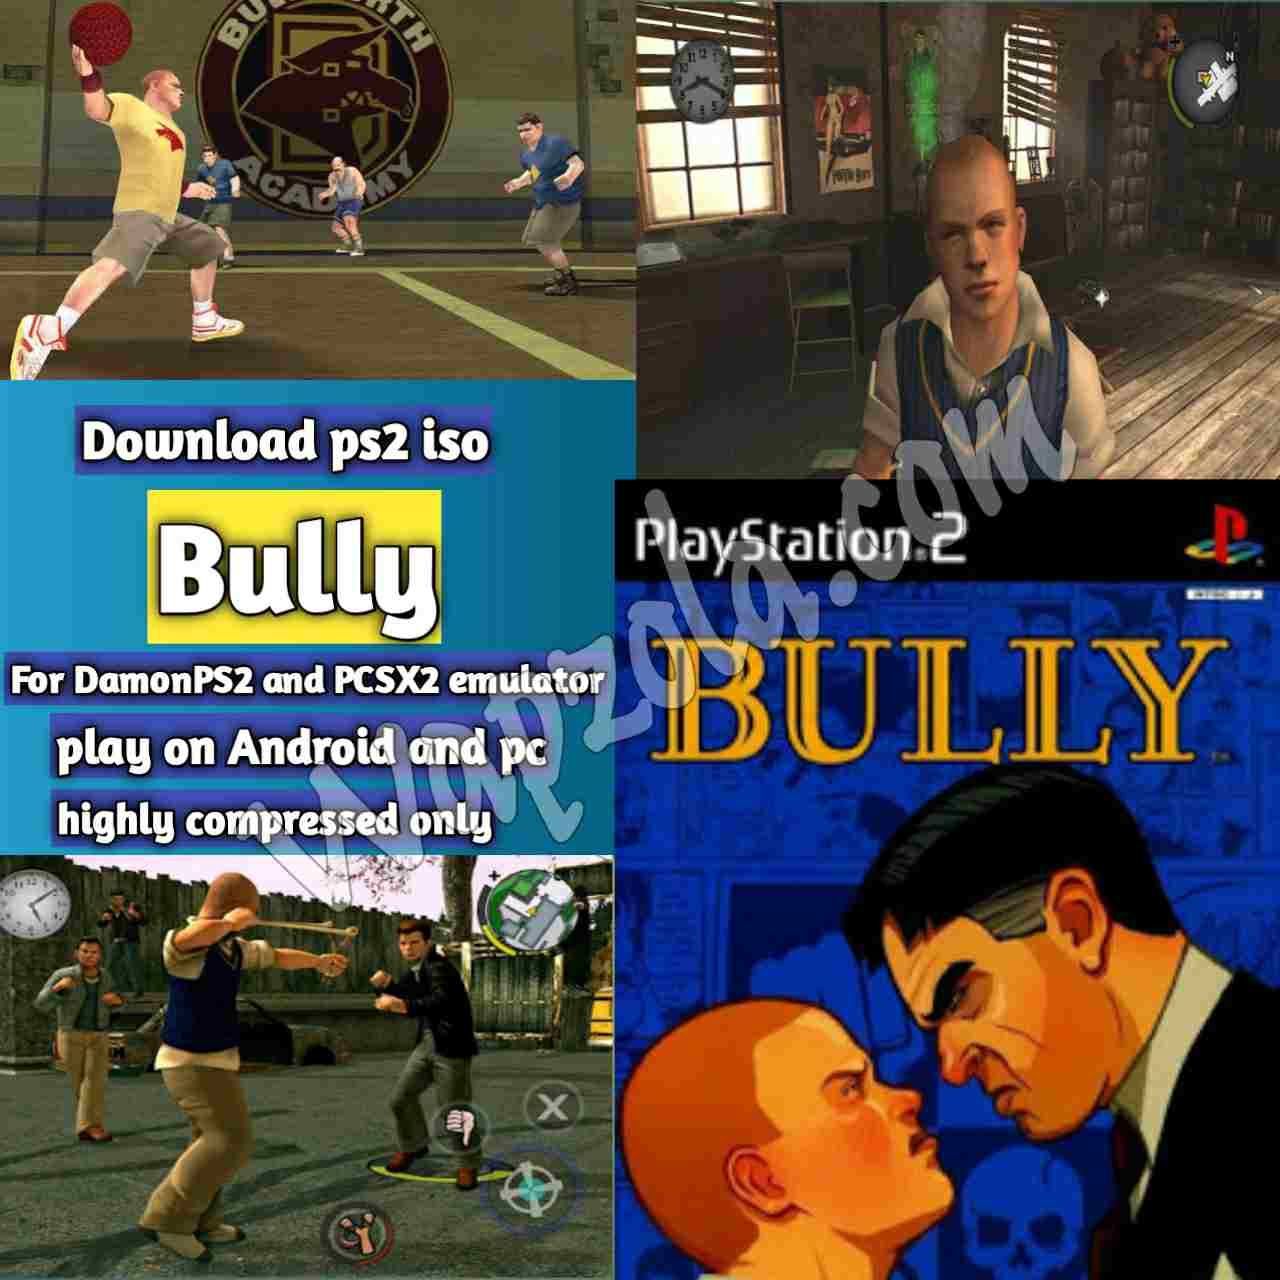 download-bully-iso-ps2-rom-pcsx2-damonps2-highly-compressed